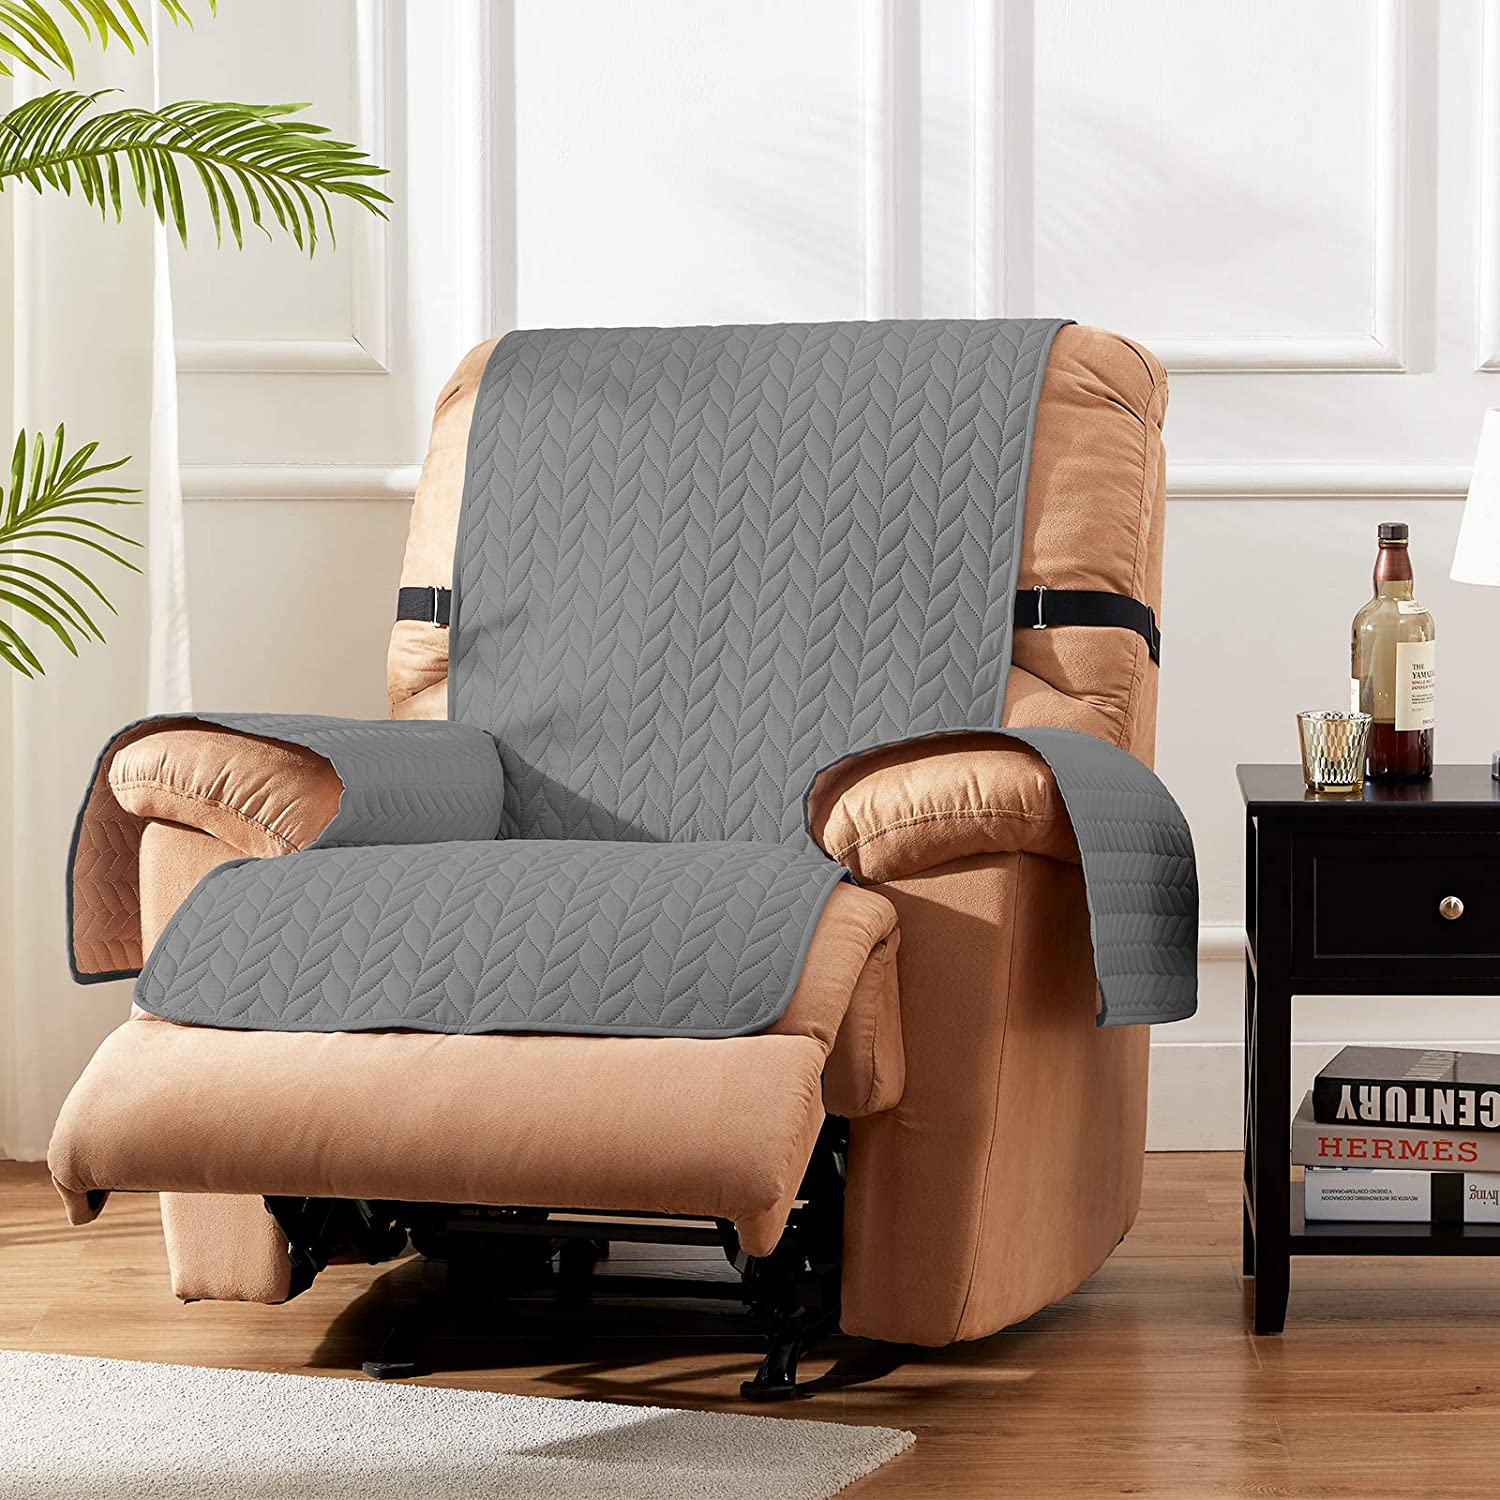 Cheap SALE Start SunStyle Home Los Angeles Mall Recliner Chair Cover Pro Furniture 100% Waterproof